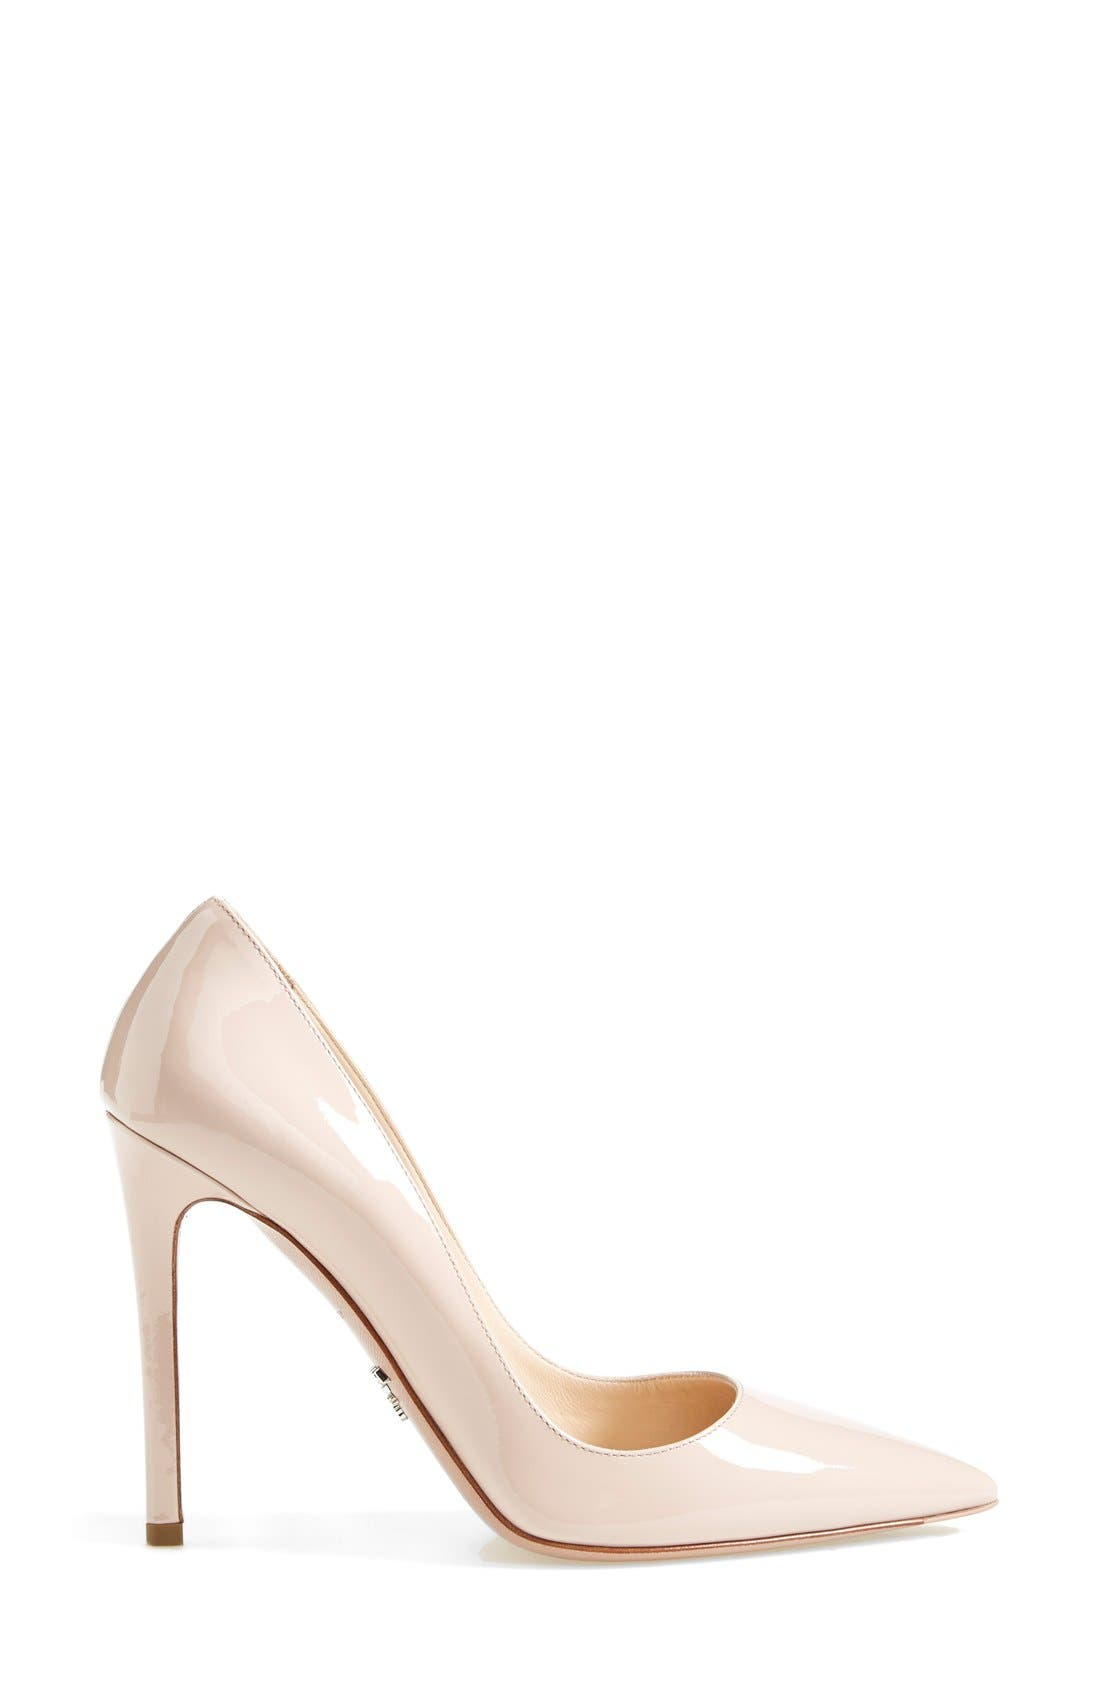 Pointy Toe Pump,                             Alternate thumbnail 4, color,                             Cipria Patent